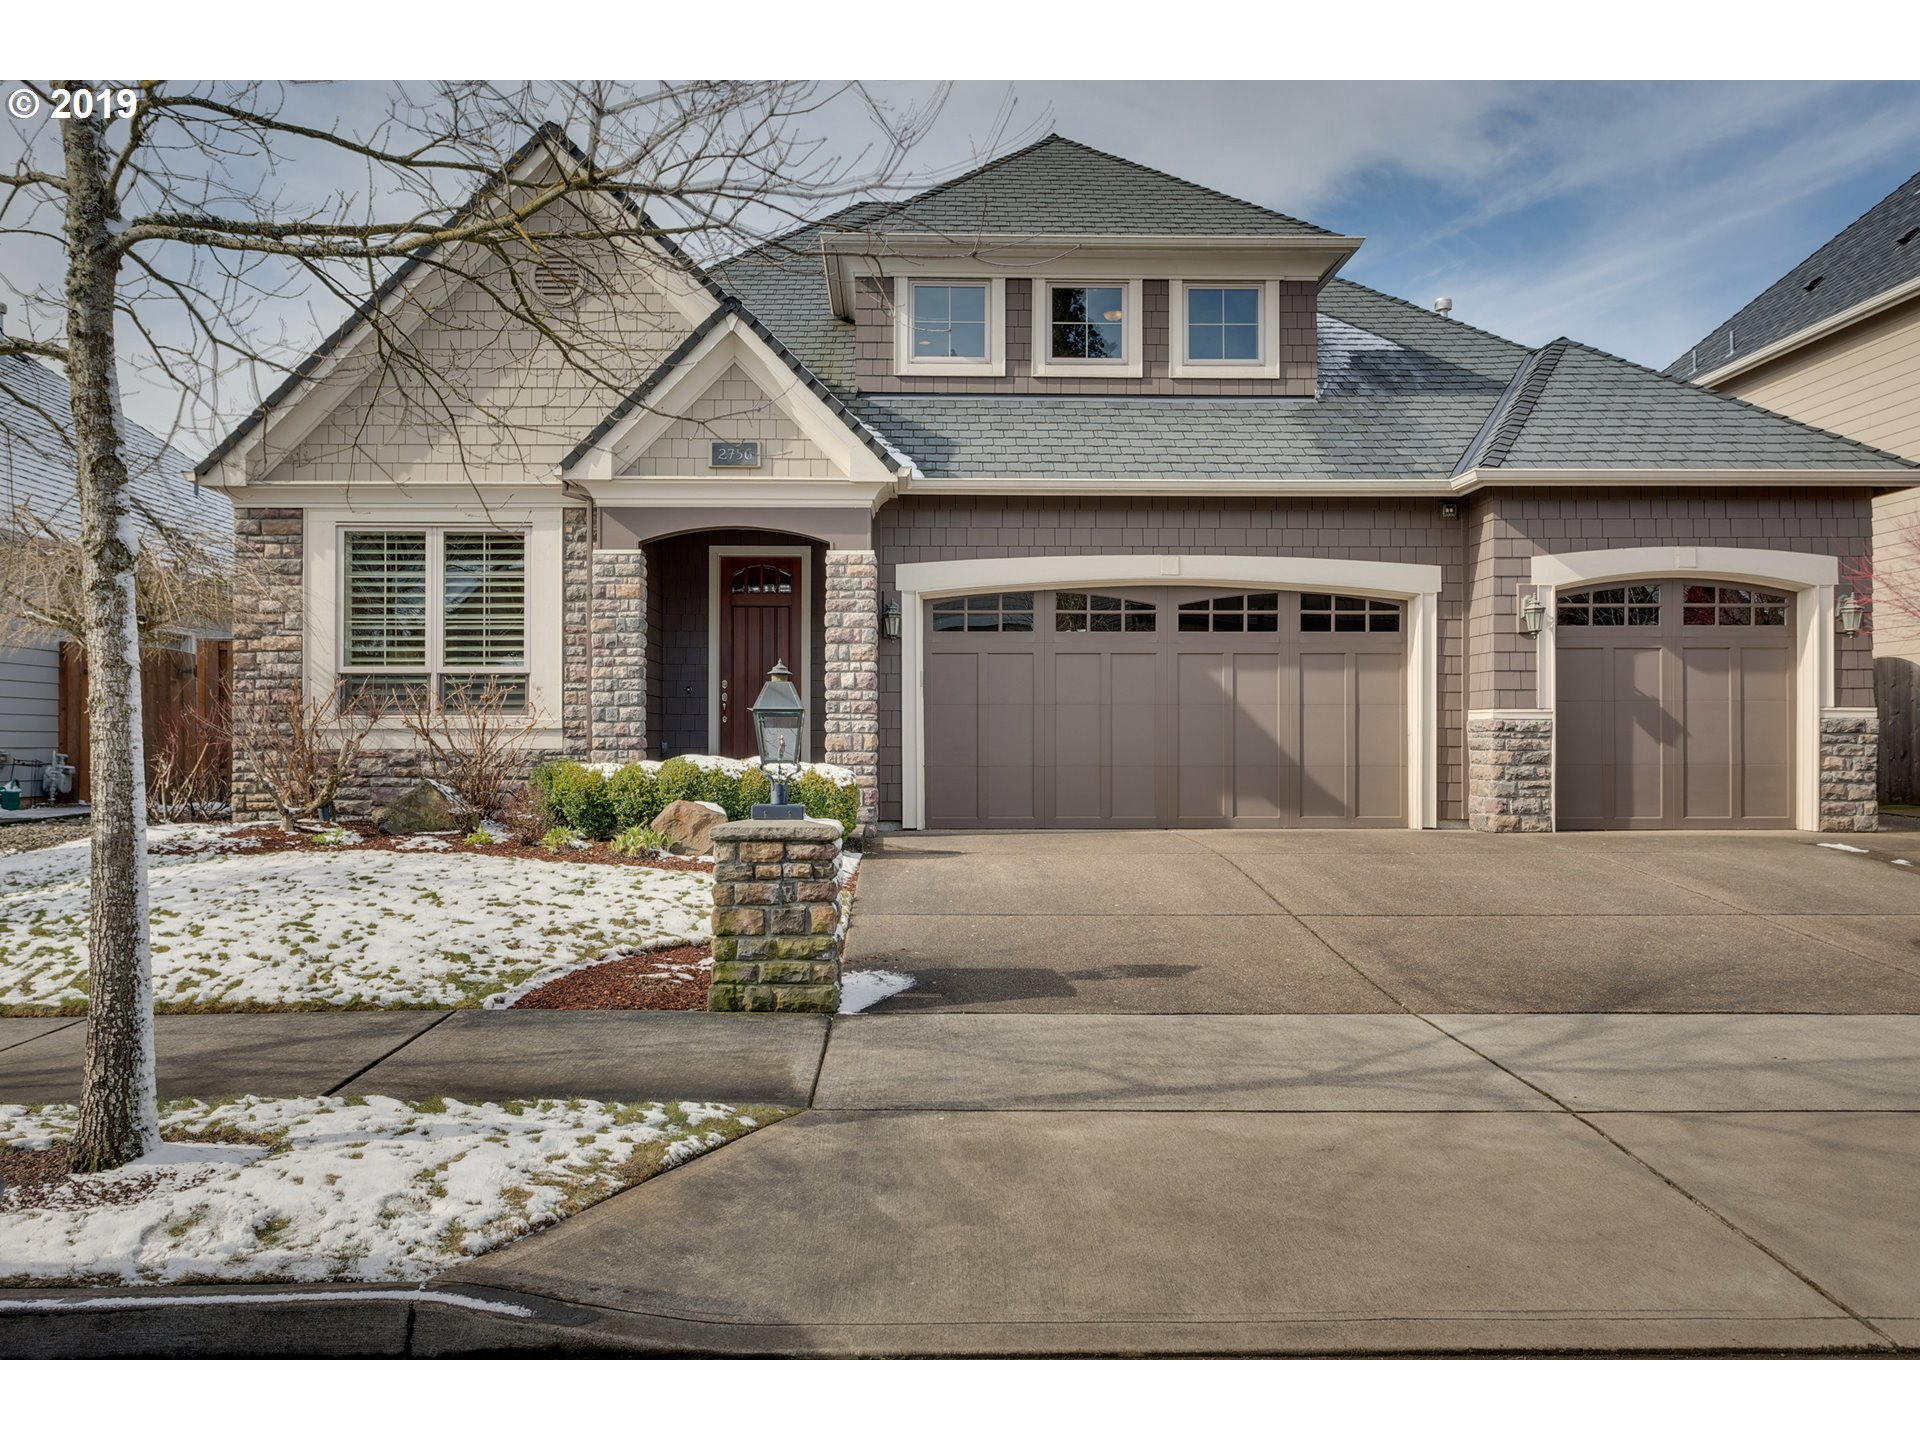 Stunning custom home w/master, den, pwdr bath, formal dining, kitchen, nook, great room w fireplace & laundry on main, 2nd bdrm suite & 3rd bdrm, full bath, bonus rm w built-in office upstairs. Enjoy tranquility in private backyard & the community pool. Amenities inc. upgrades throughout, slab granite, tile, 10' ceilings w 8'solid core doors on main, fully landscaped w auto sprinklers on level lot, HVAC, 2 water heaters & more.